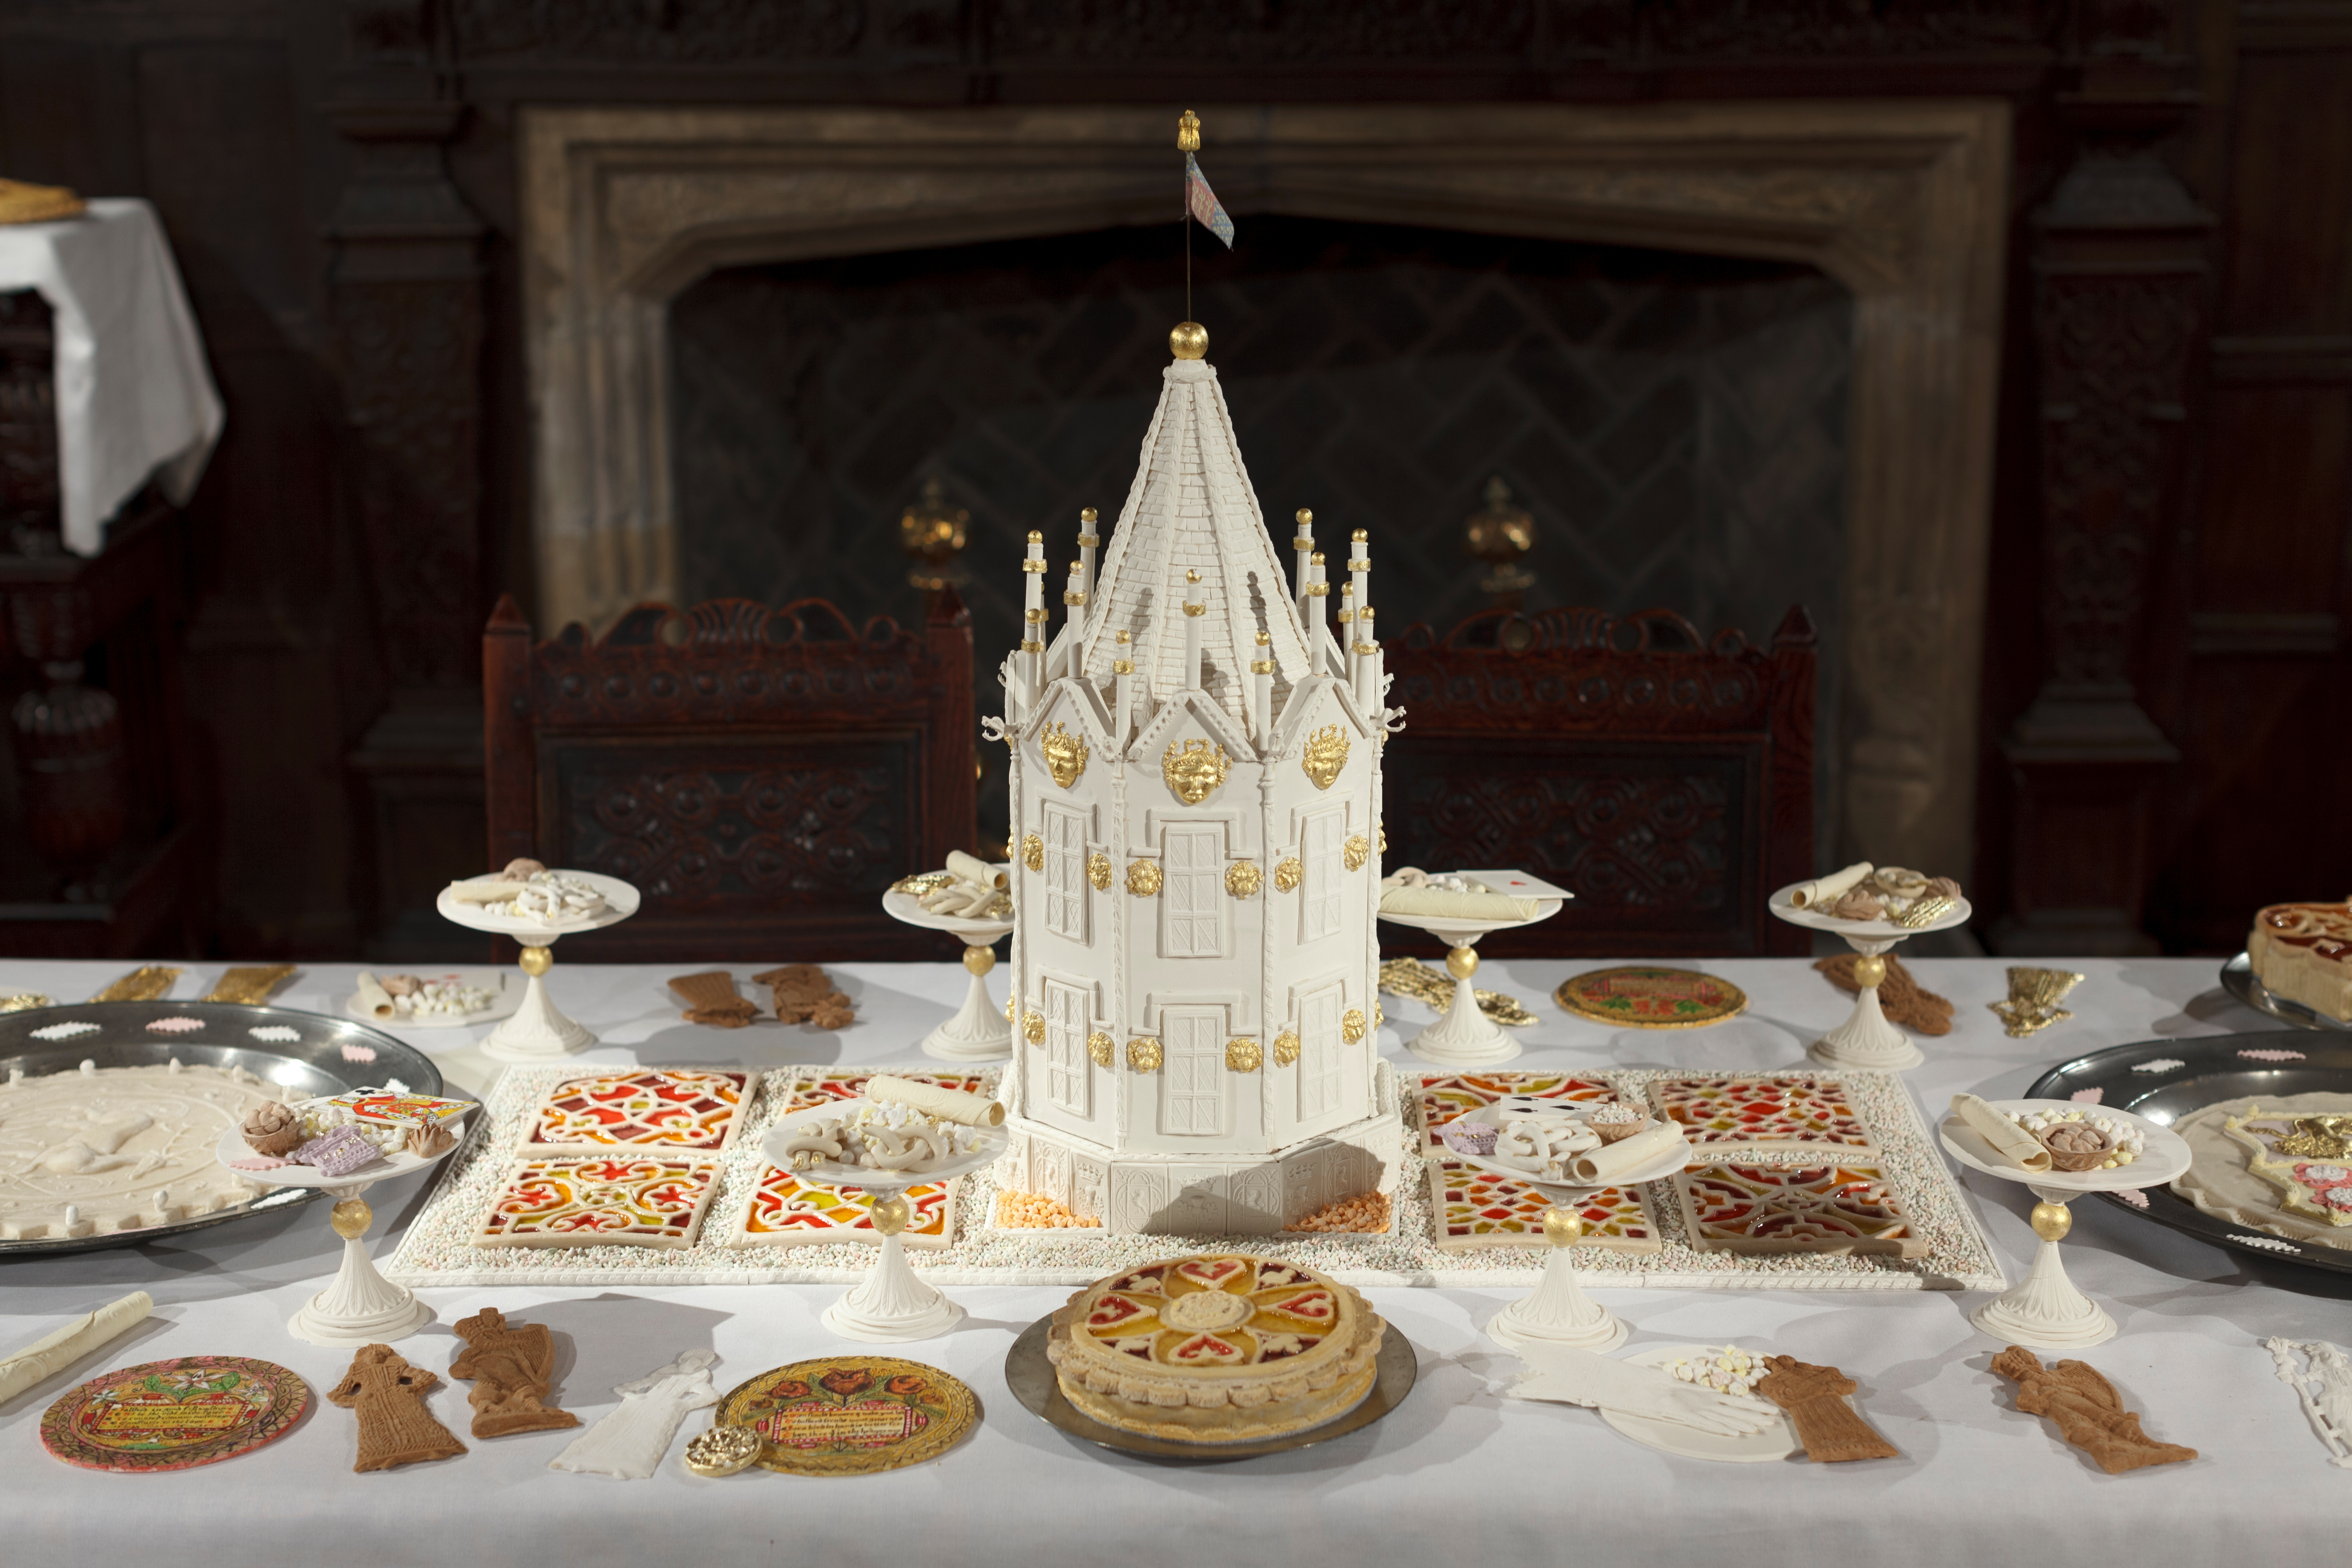 Supper with Shakespeare: The Evolution of English Banqueting